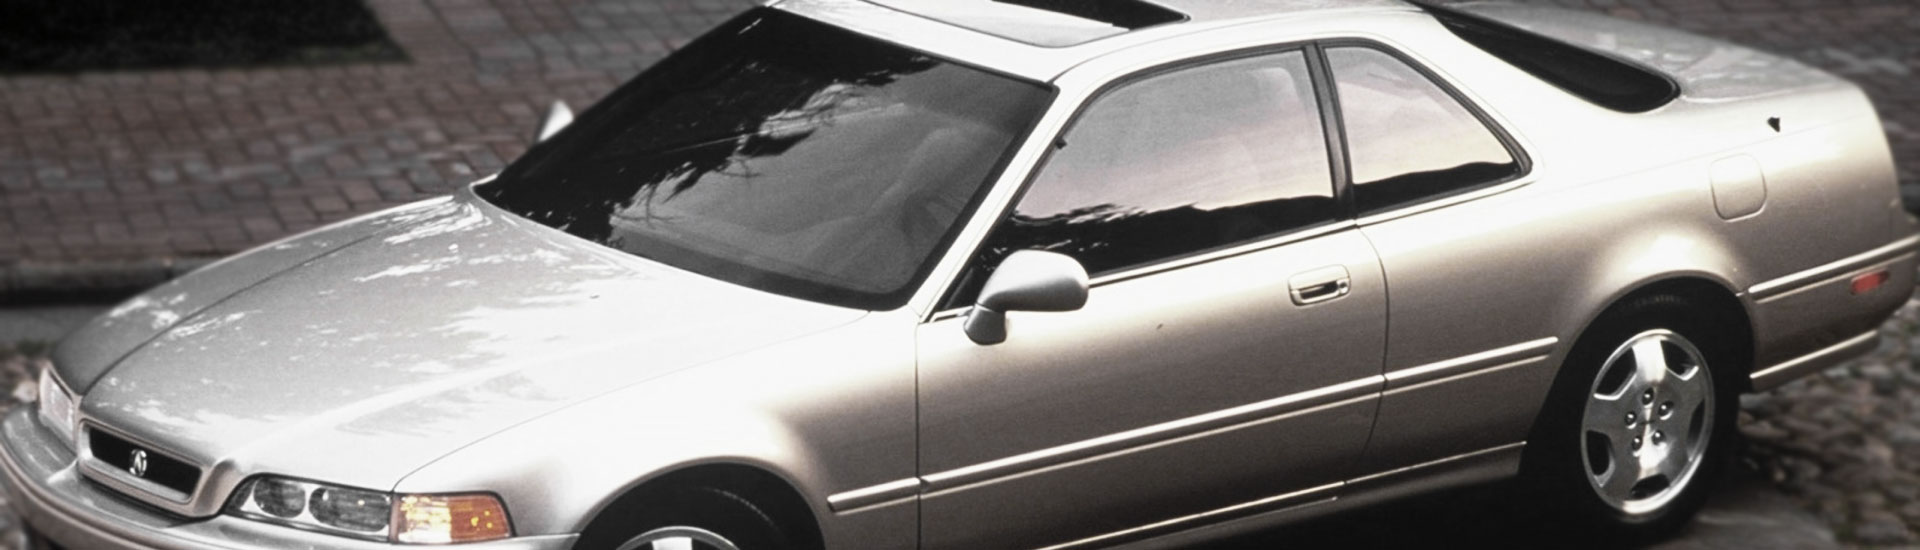 Acura Legend Window Tint